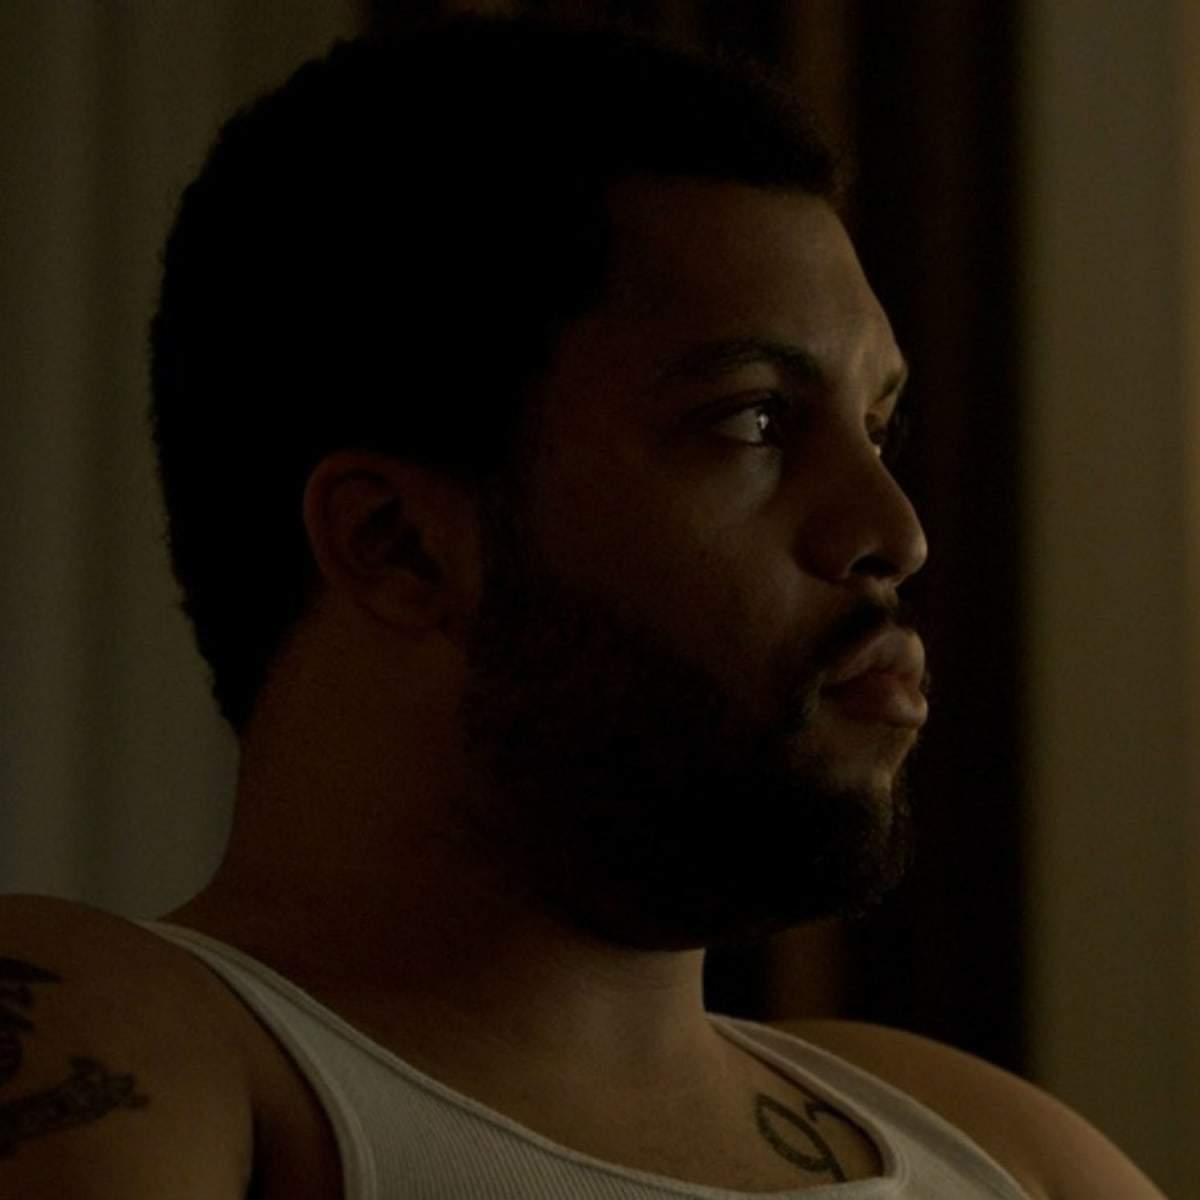 O'Shea Jackson, Jr. in Den of Thieves